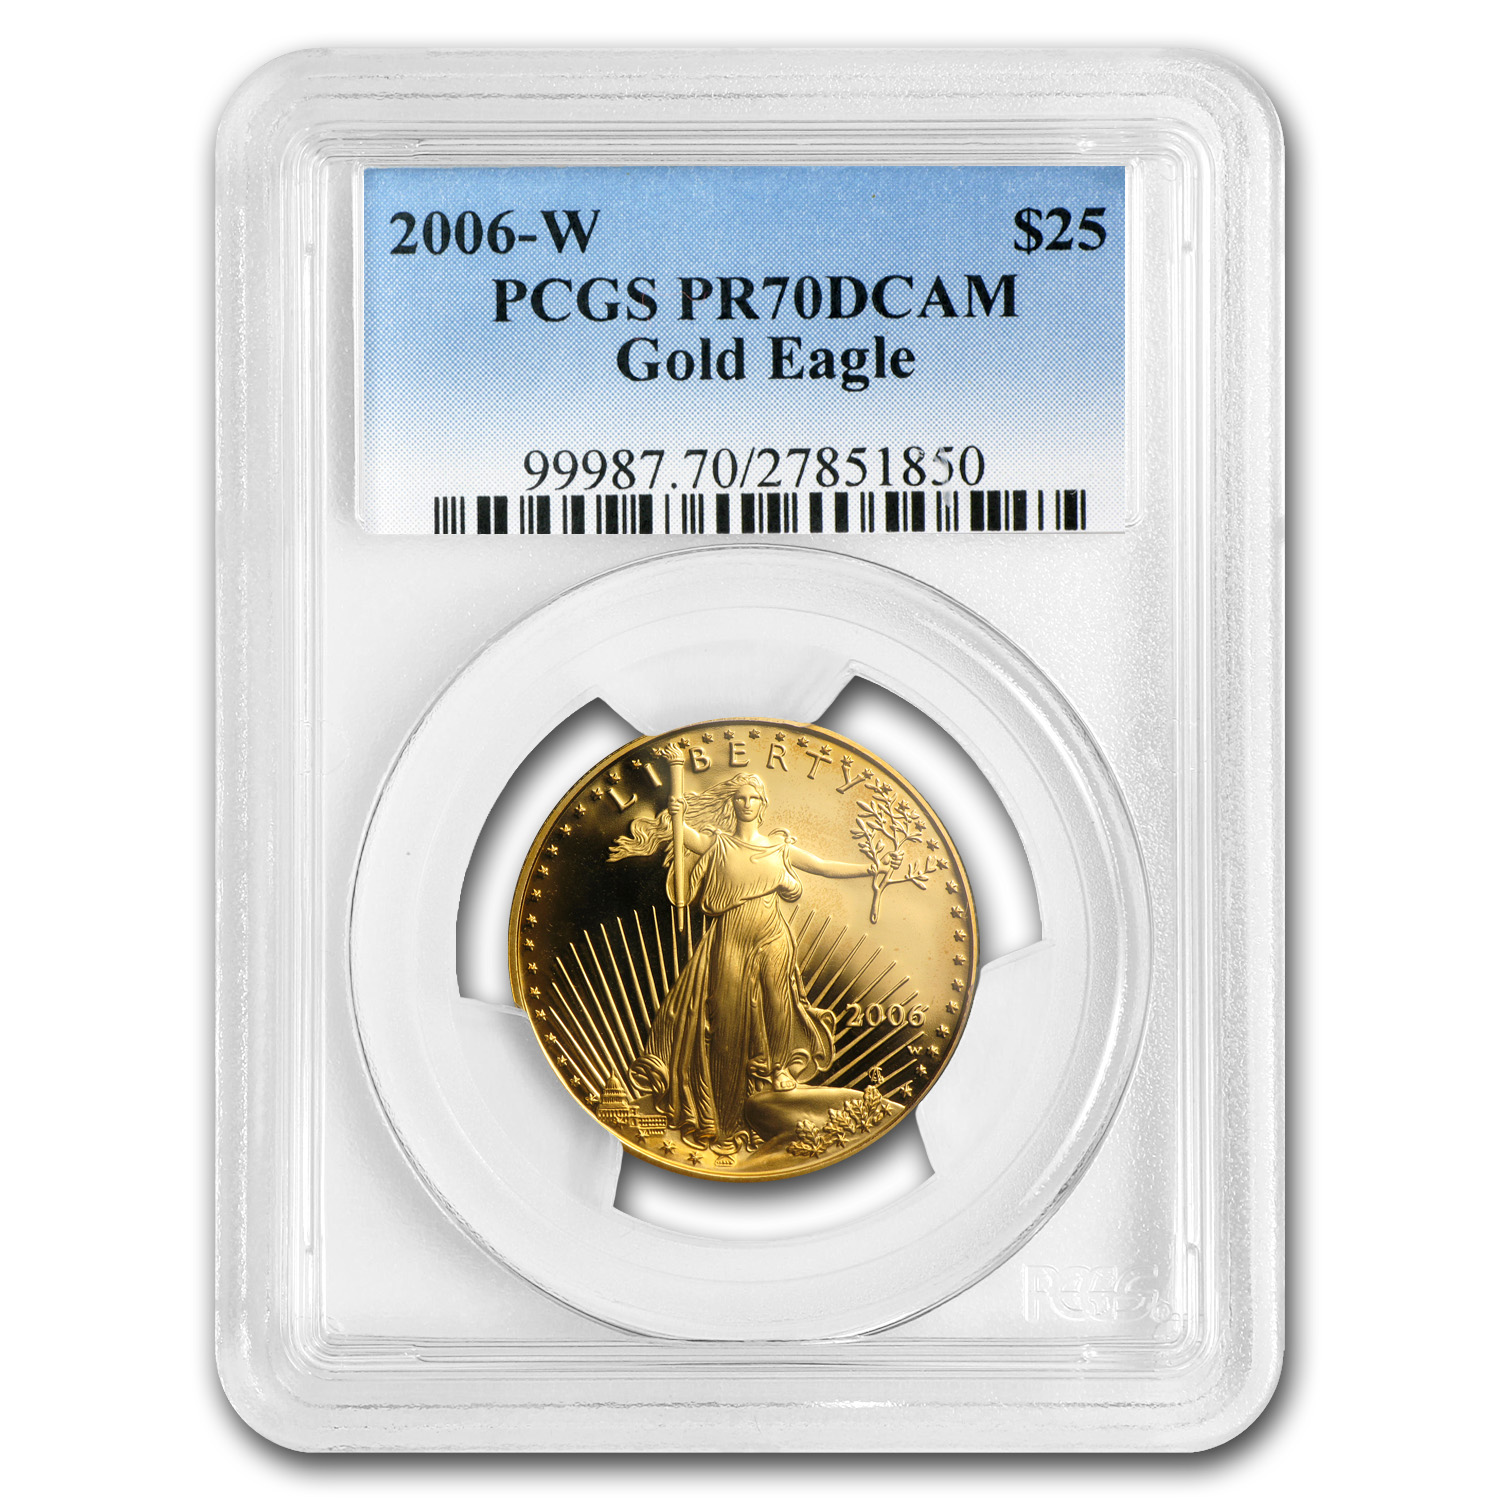 2006-W 1/2 oz Proof Gold American Eagle PR-70 PCGS